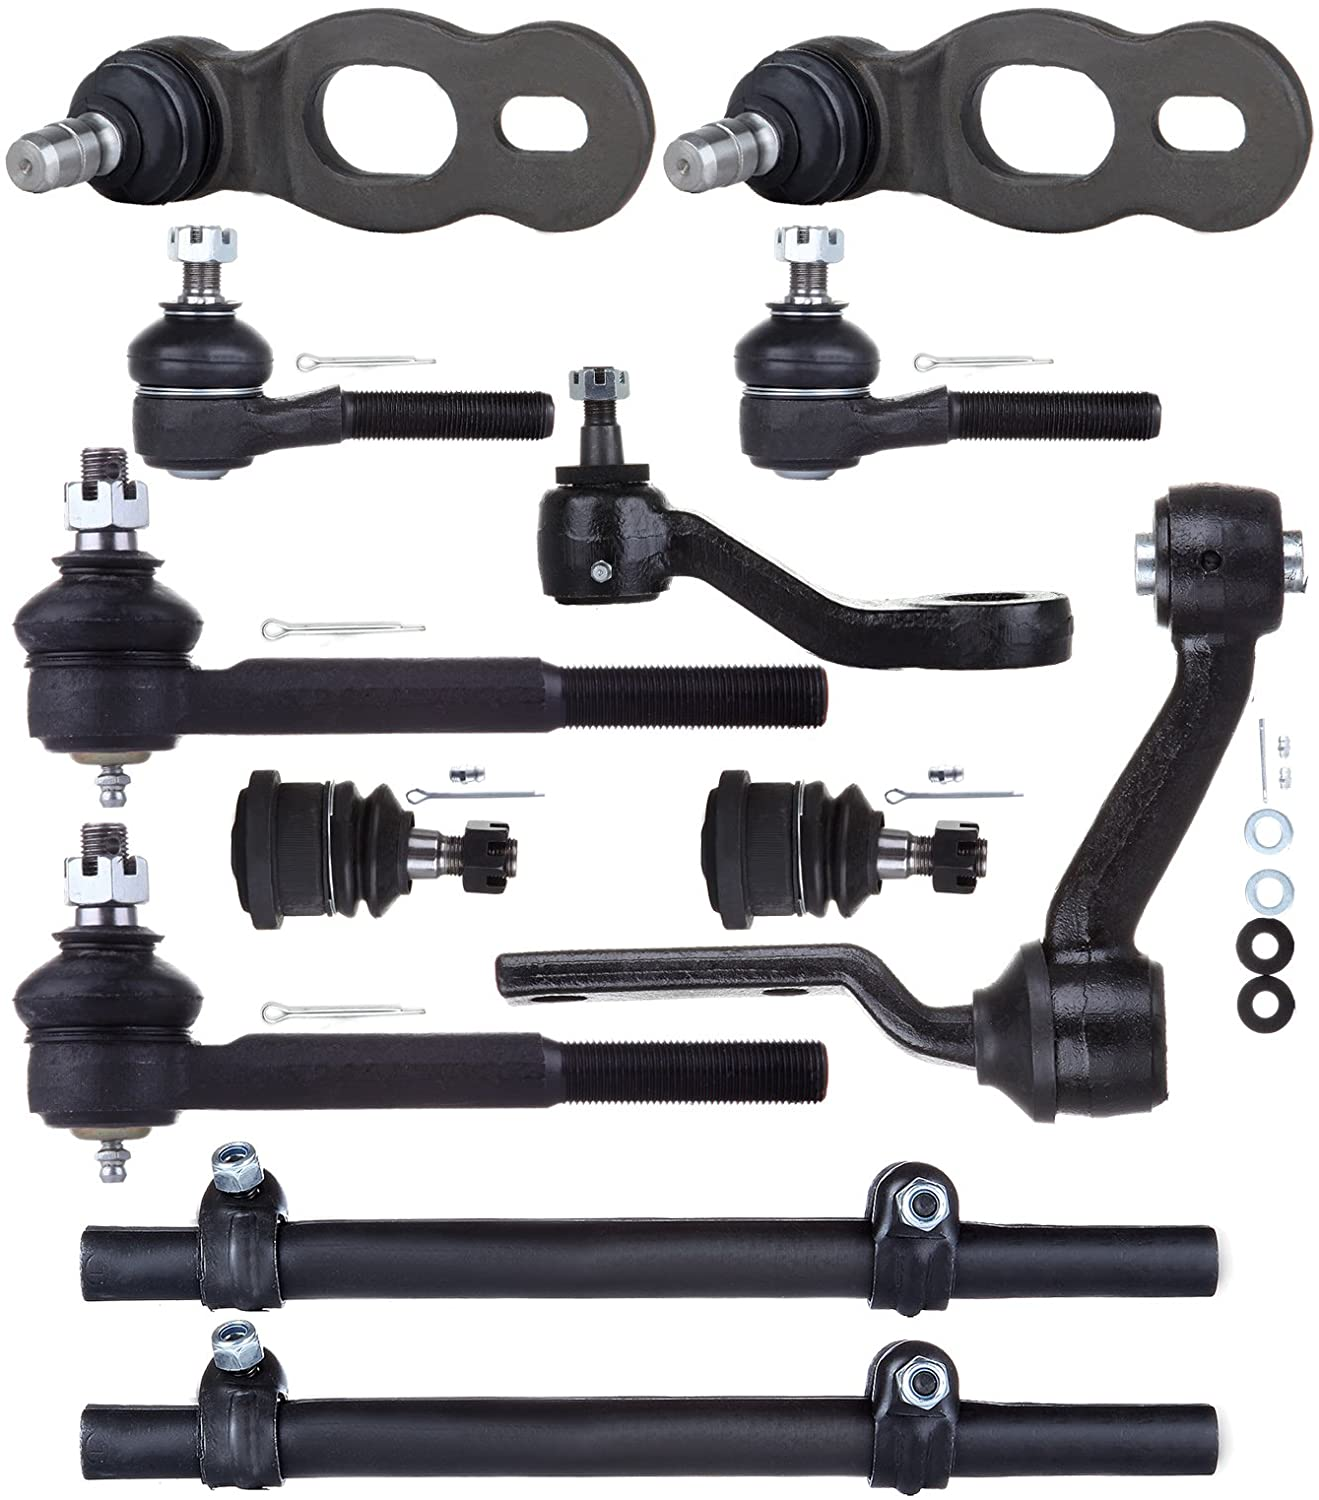 AINTIER Suspension Set of 12 Tie Rod Lower Ball Joint Adjusting Sleeve Ball Joint Idler Arm Pitman Arm fit for 1995-2002 for Ford Crown Victoria with OEM K8678 K8685 K8688 ES3494 ES3495 K8283 ES3311S